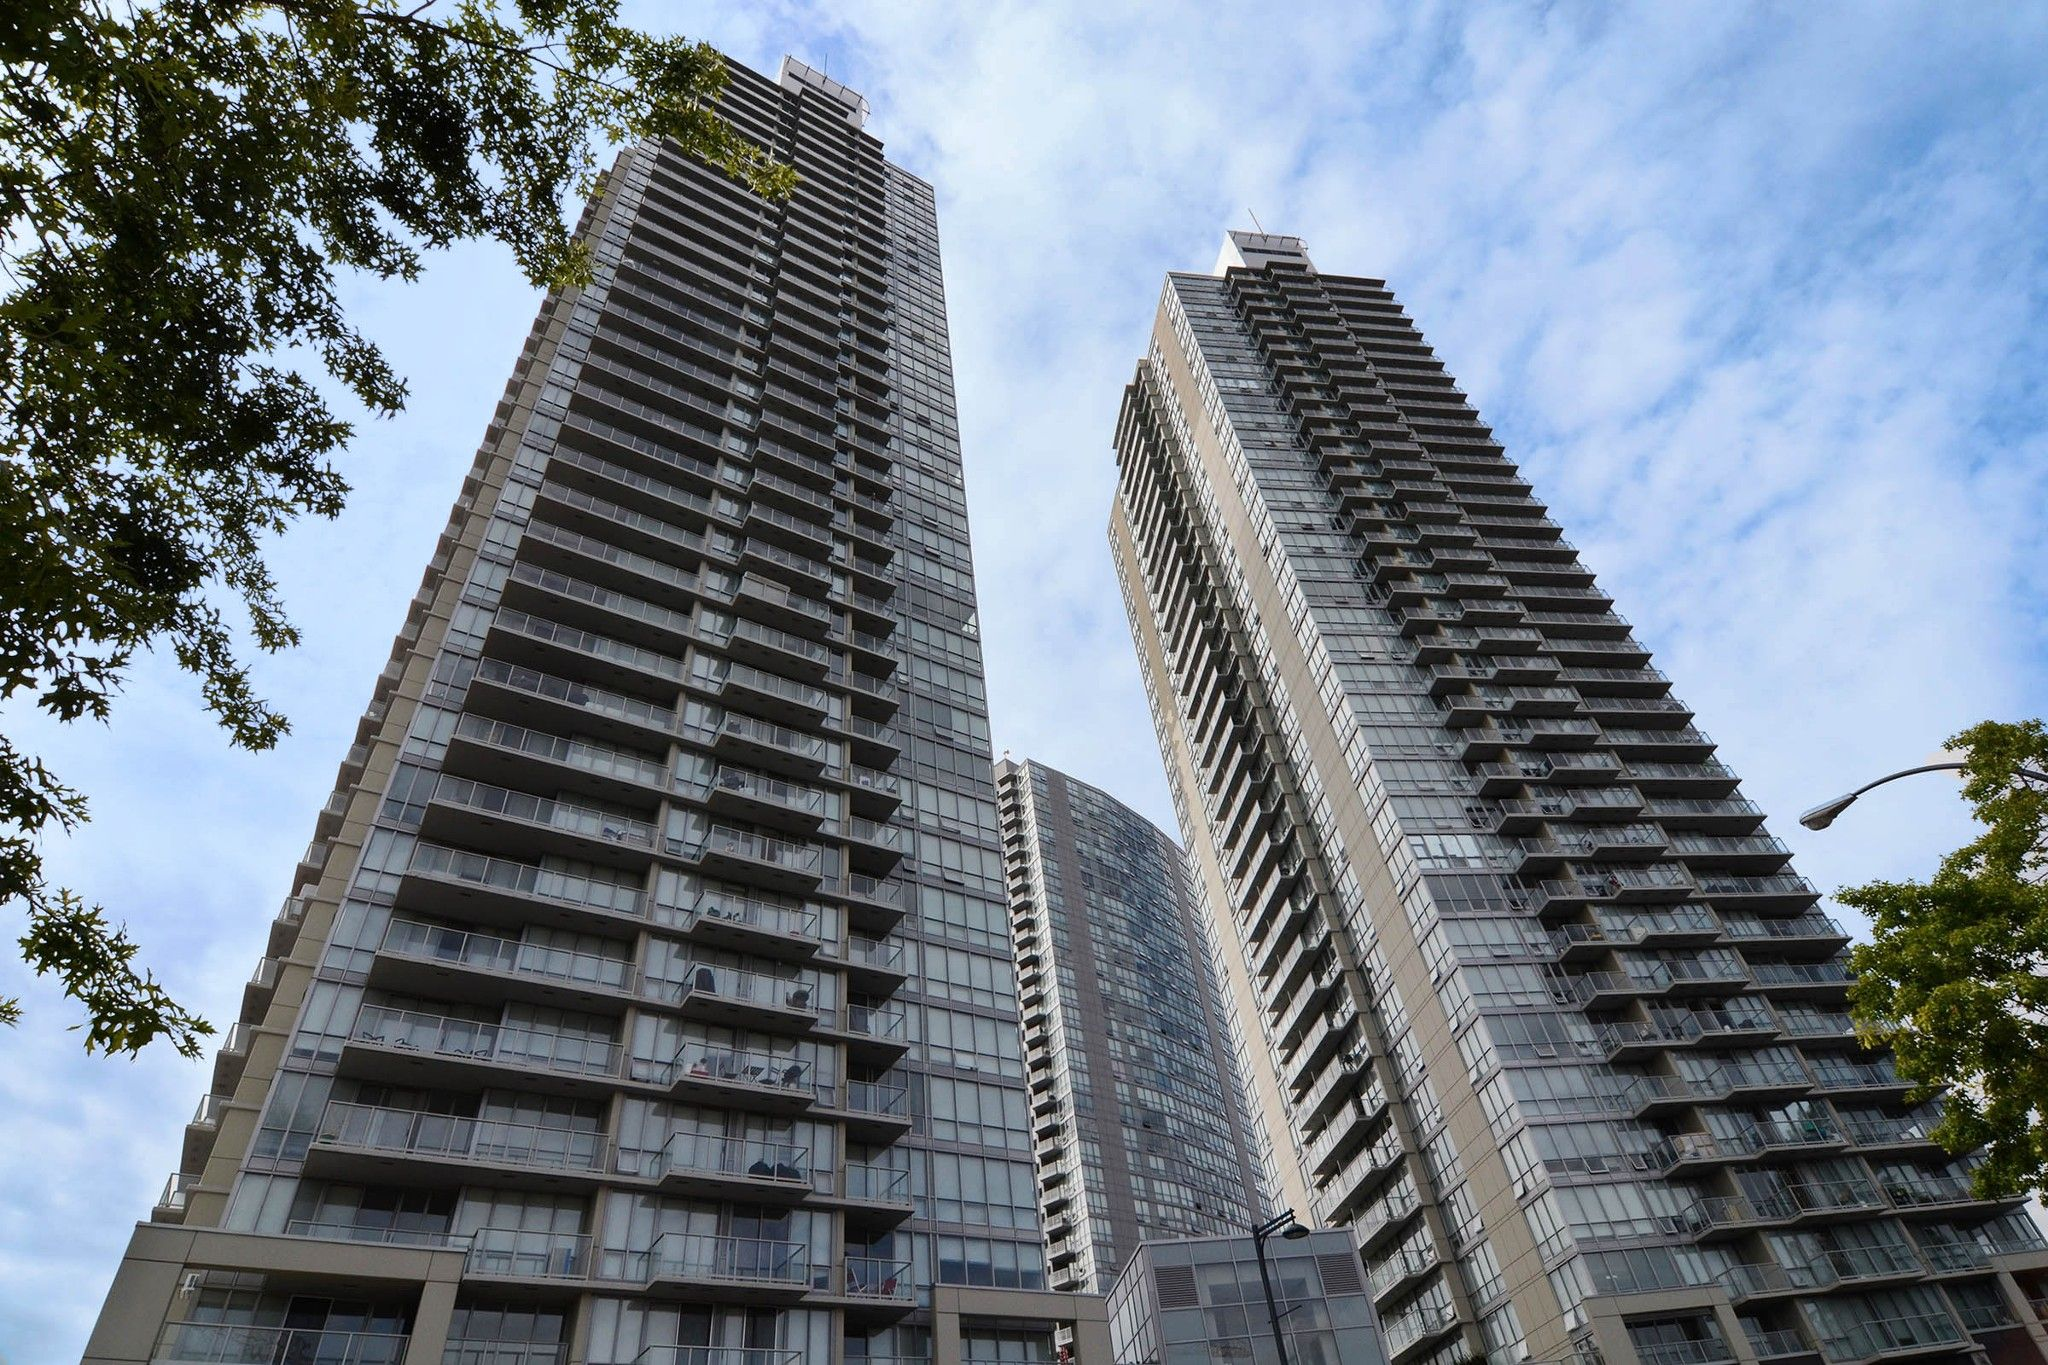 """Main Photo: 3203 9981 WHALLEY Boulevard in Surrey: Whalley Condo for sale in """"PARK PLACE II"""" (North Surrey)  : MLS®# R2327645"""